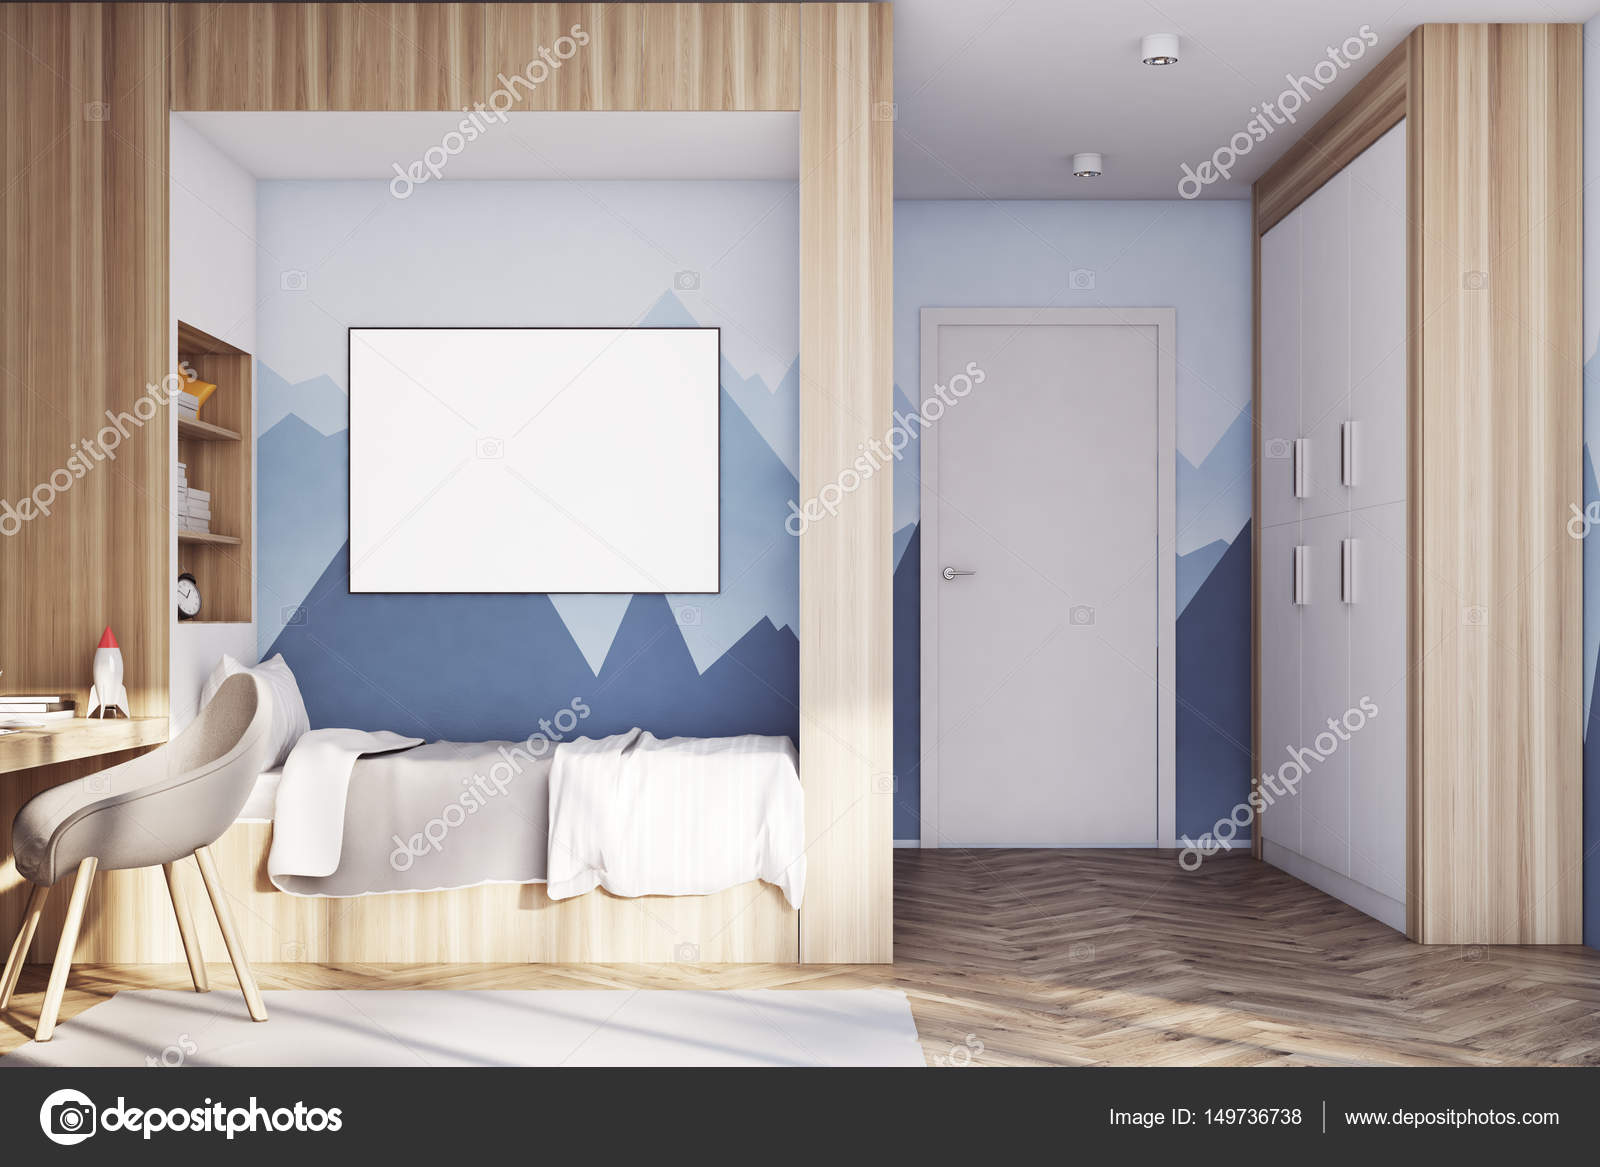 Good Wallpaper Mountain Room - depositphotos_149736738-stock-photo-kids-room-with-poster-close  Picture_391613.jpg